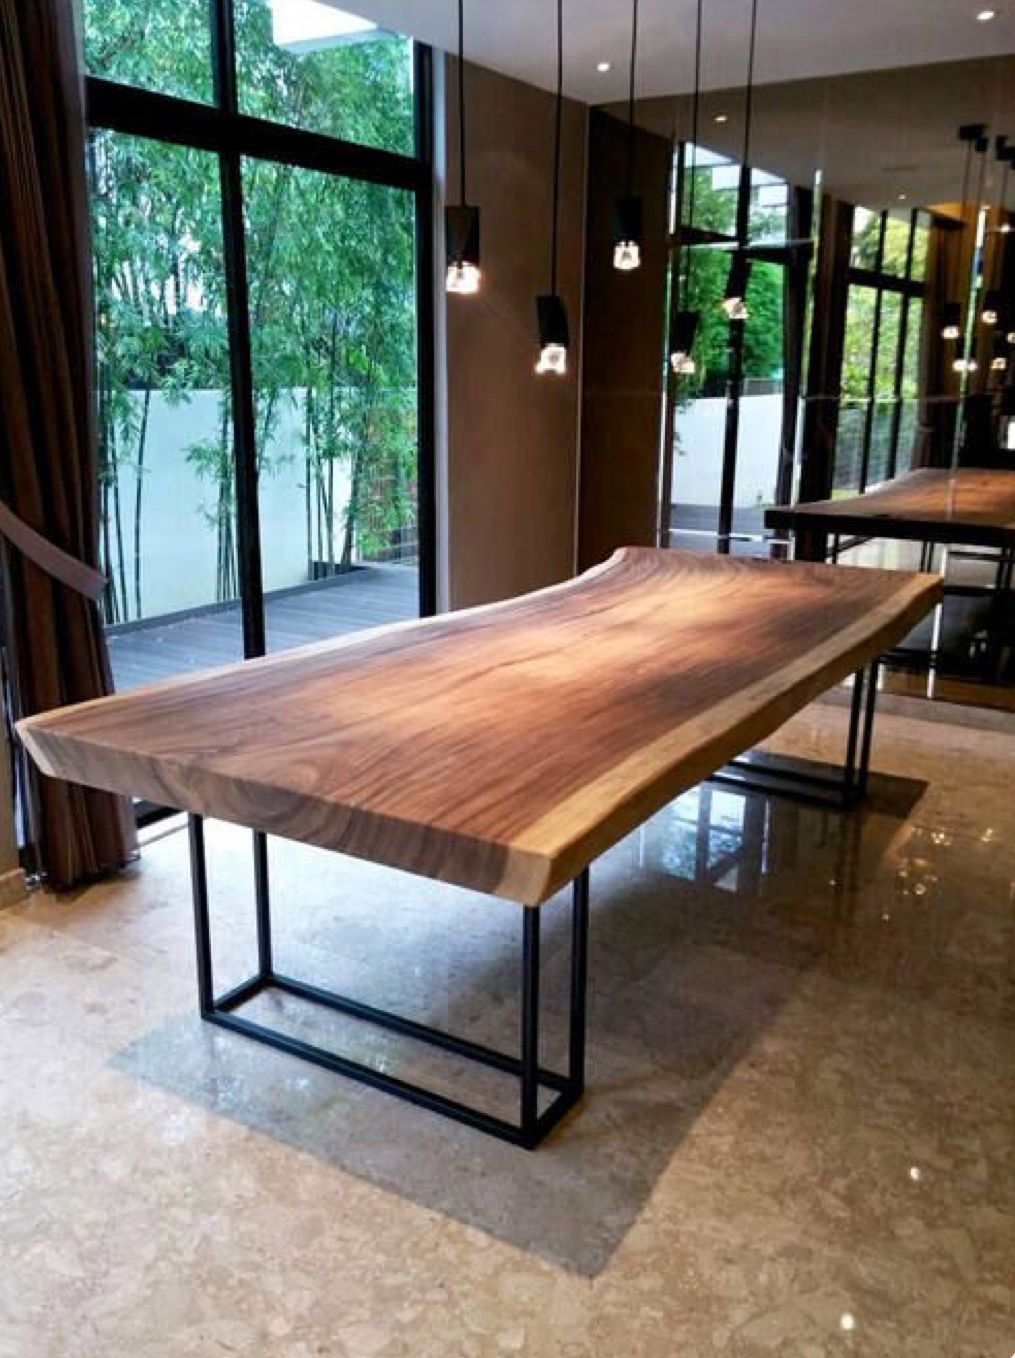 Pin By Caroline Richards On Making A Home Soon With Images Slab Dining Tables Wooden Dining Tables Live Edge Dining Table